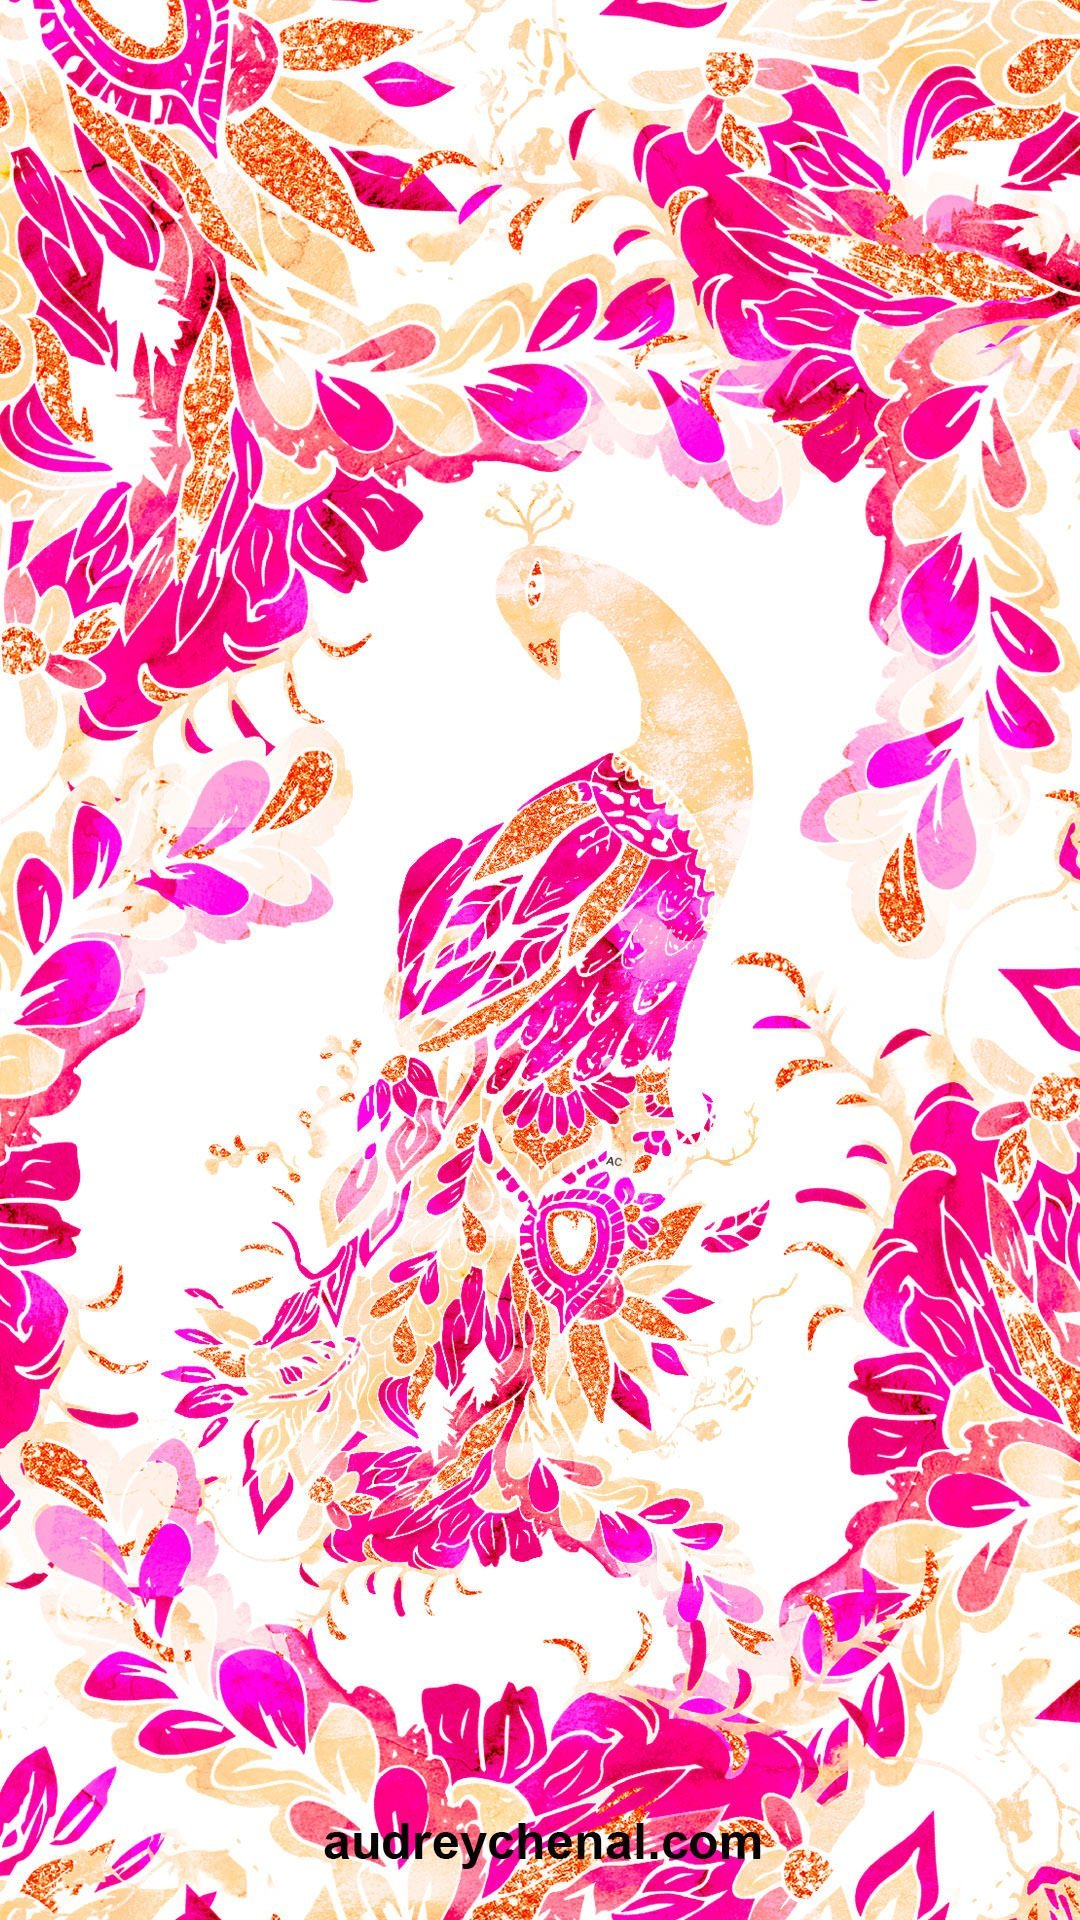 wallpaper Red pink coral hand drawn floral peacock by Audrey Chenal